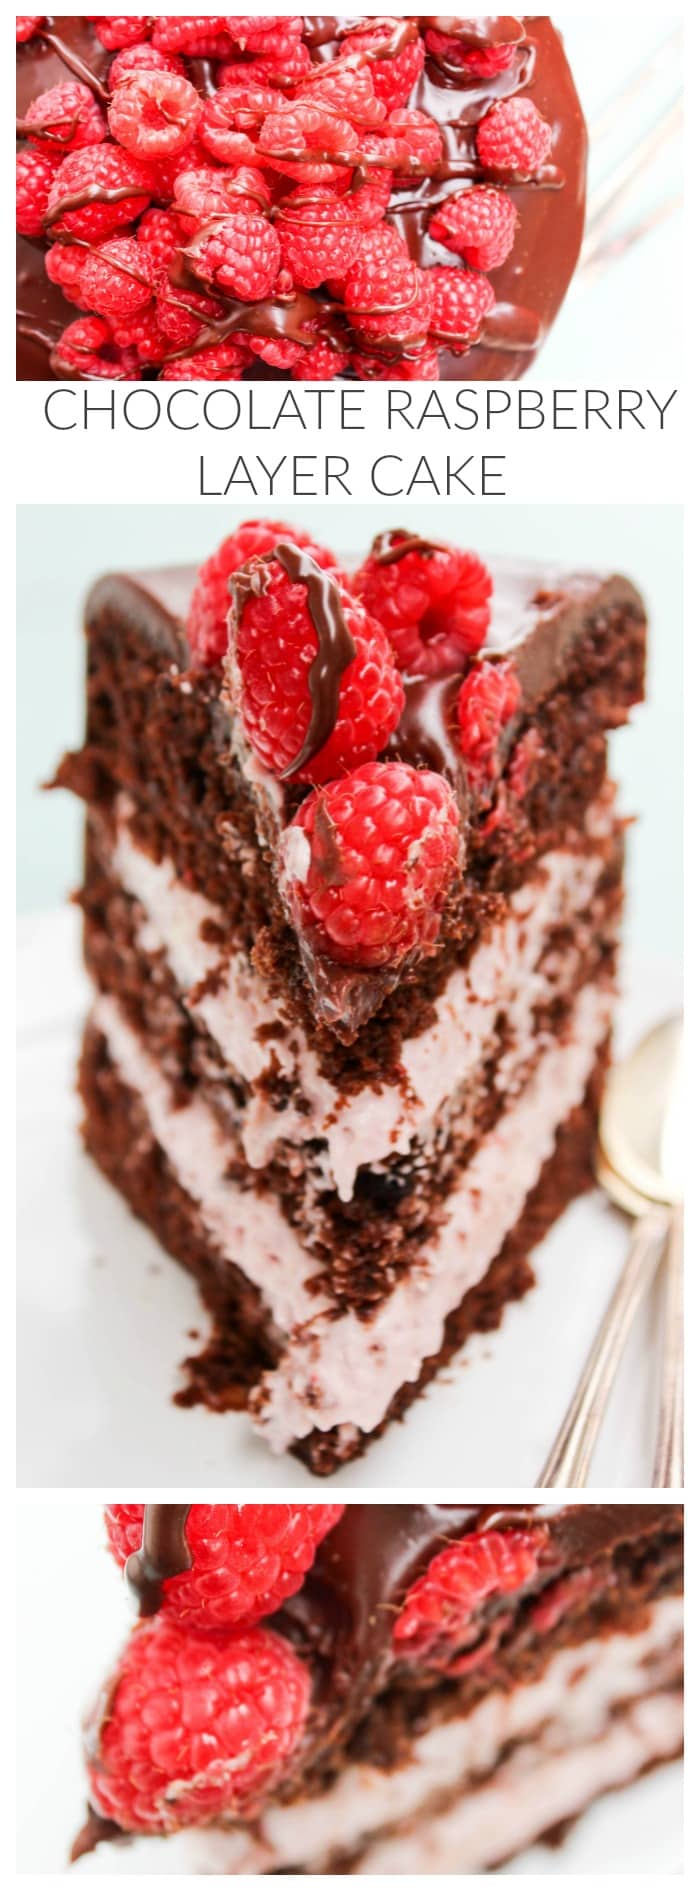 http://www.adashofsanity.com/2016/01/chocolate-raspberry-layer-cake/